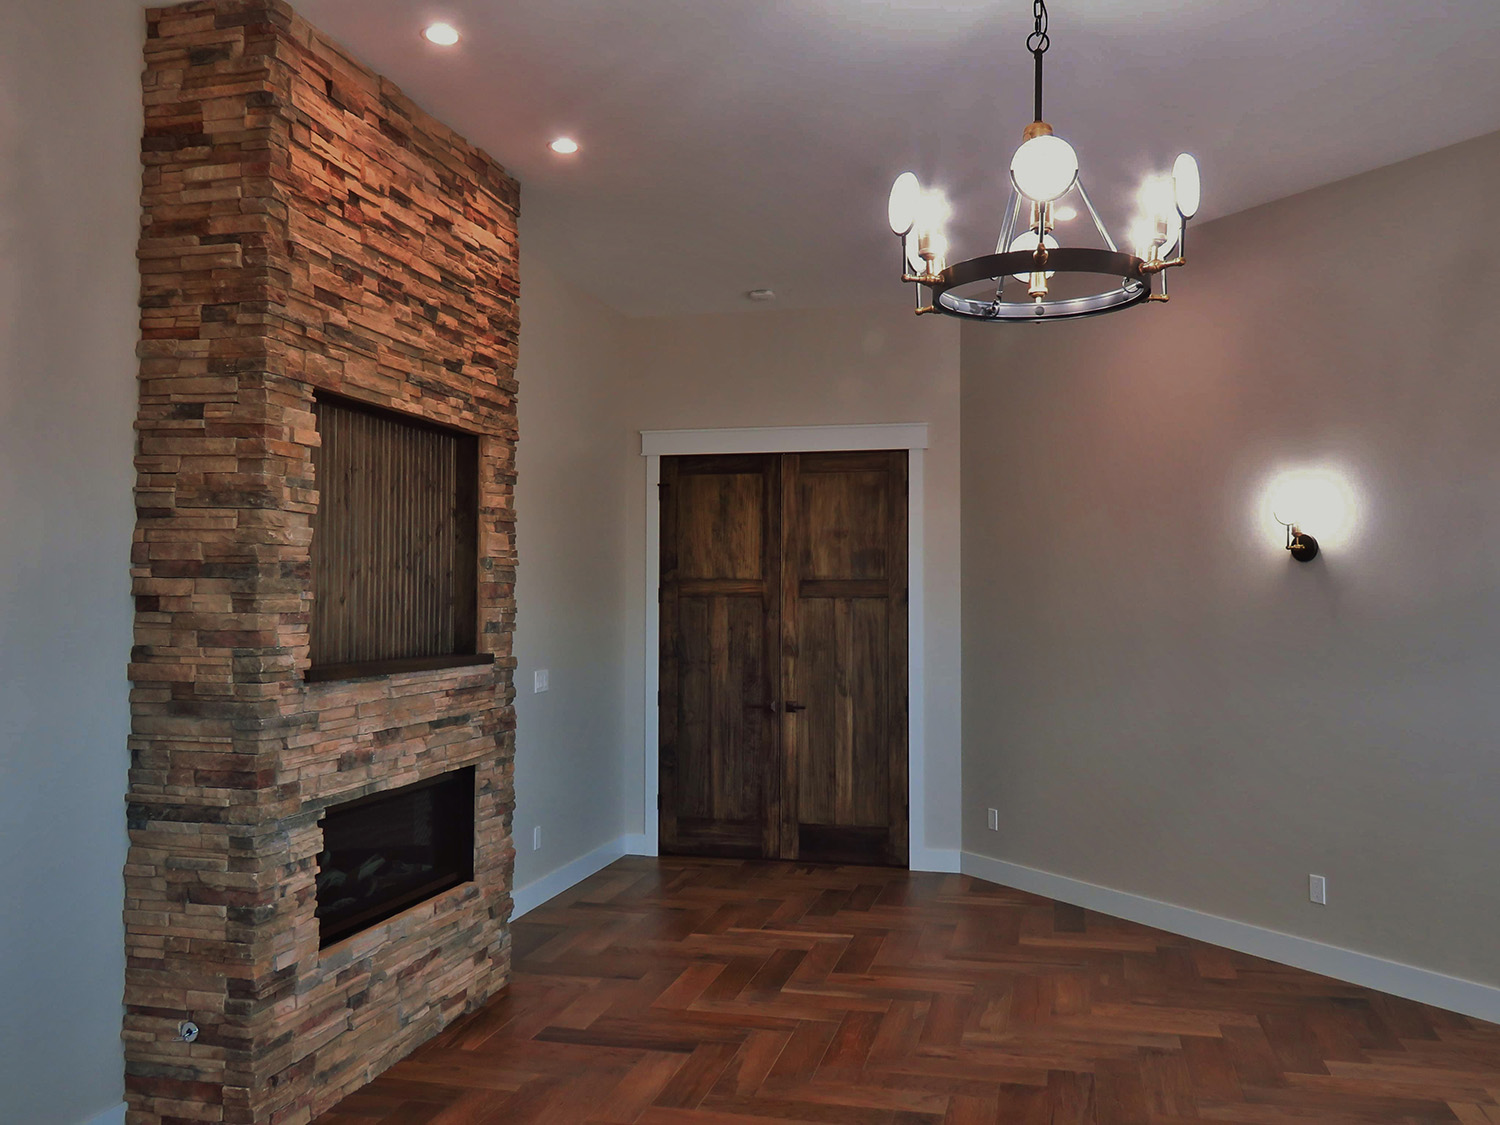 thick wooden doors and stone fireplace